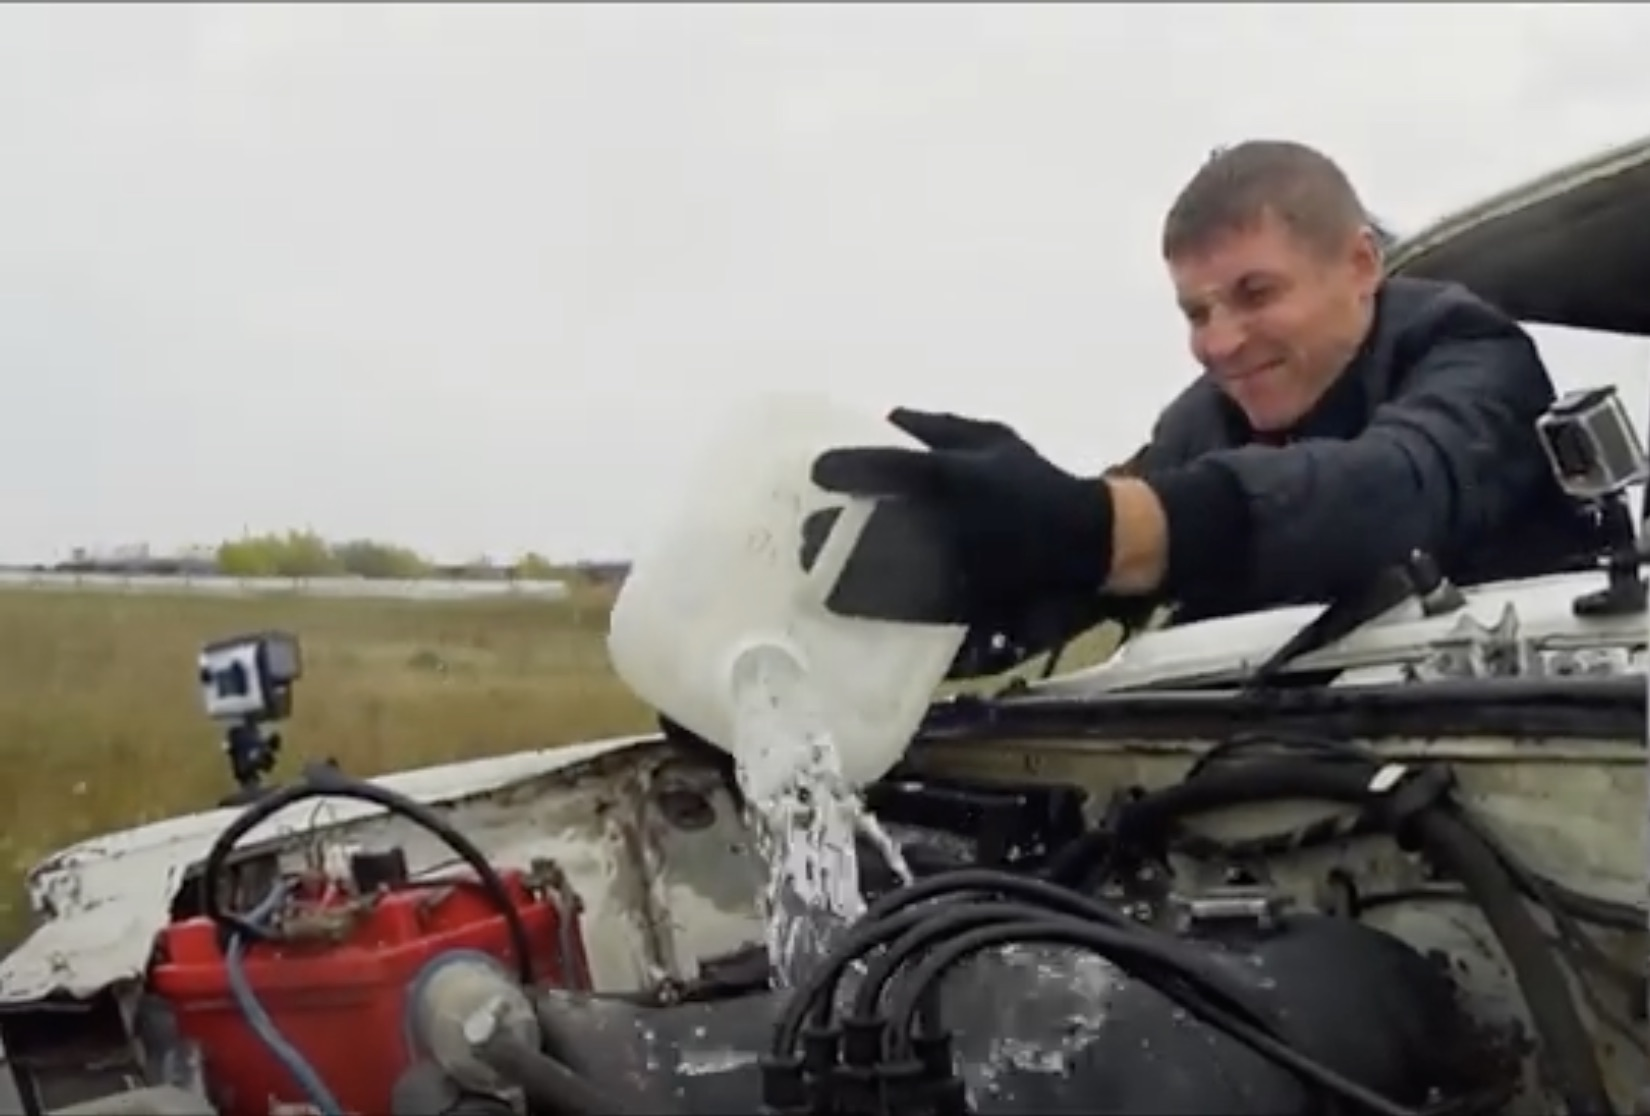 Practical Application: Hydrolocking An Engine Under Load